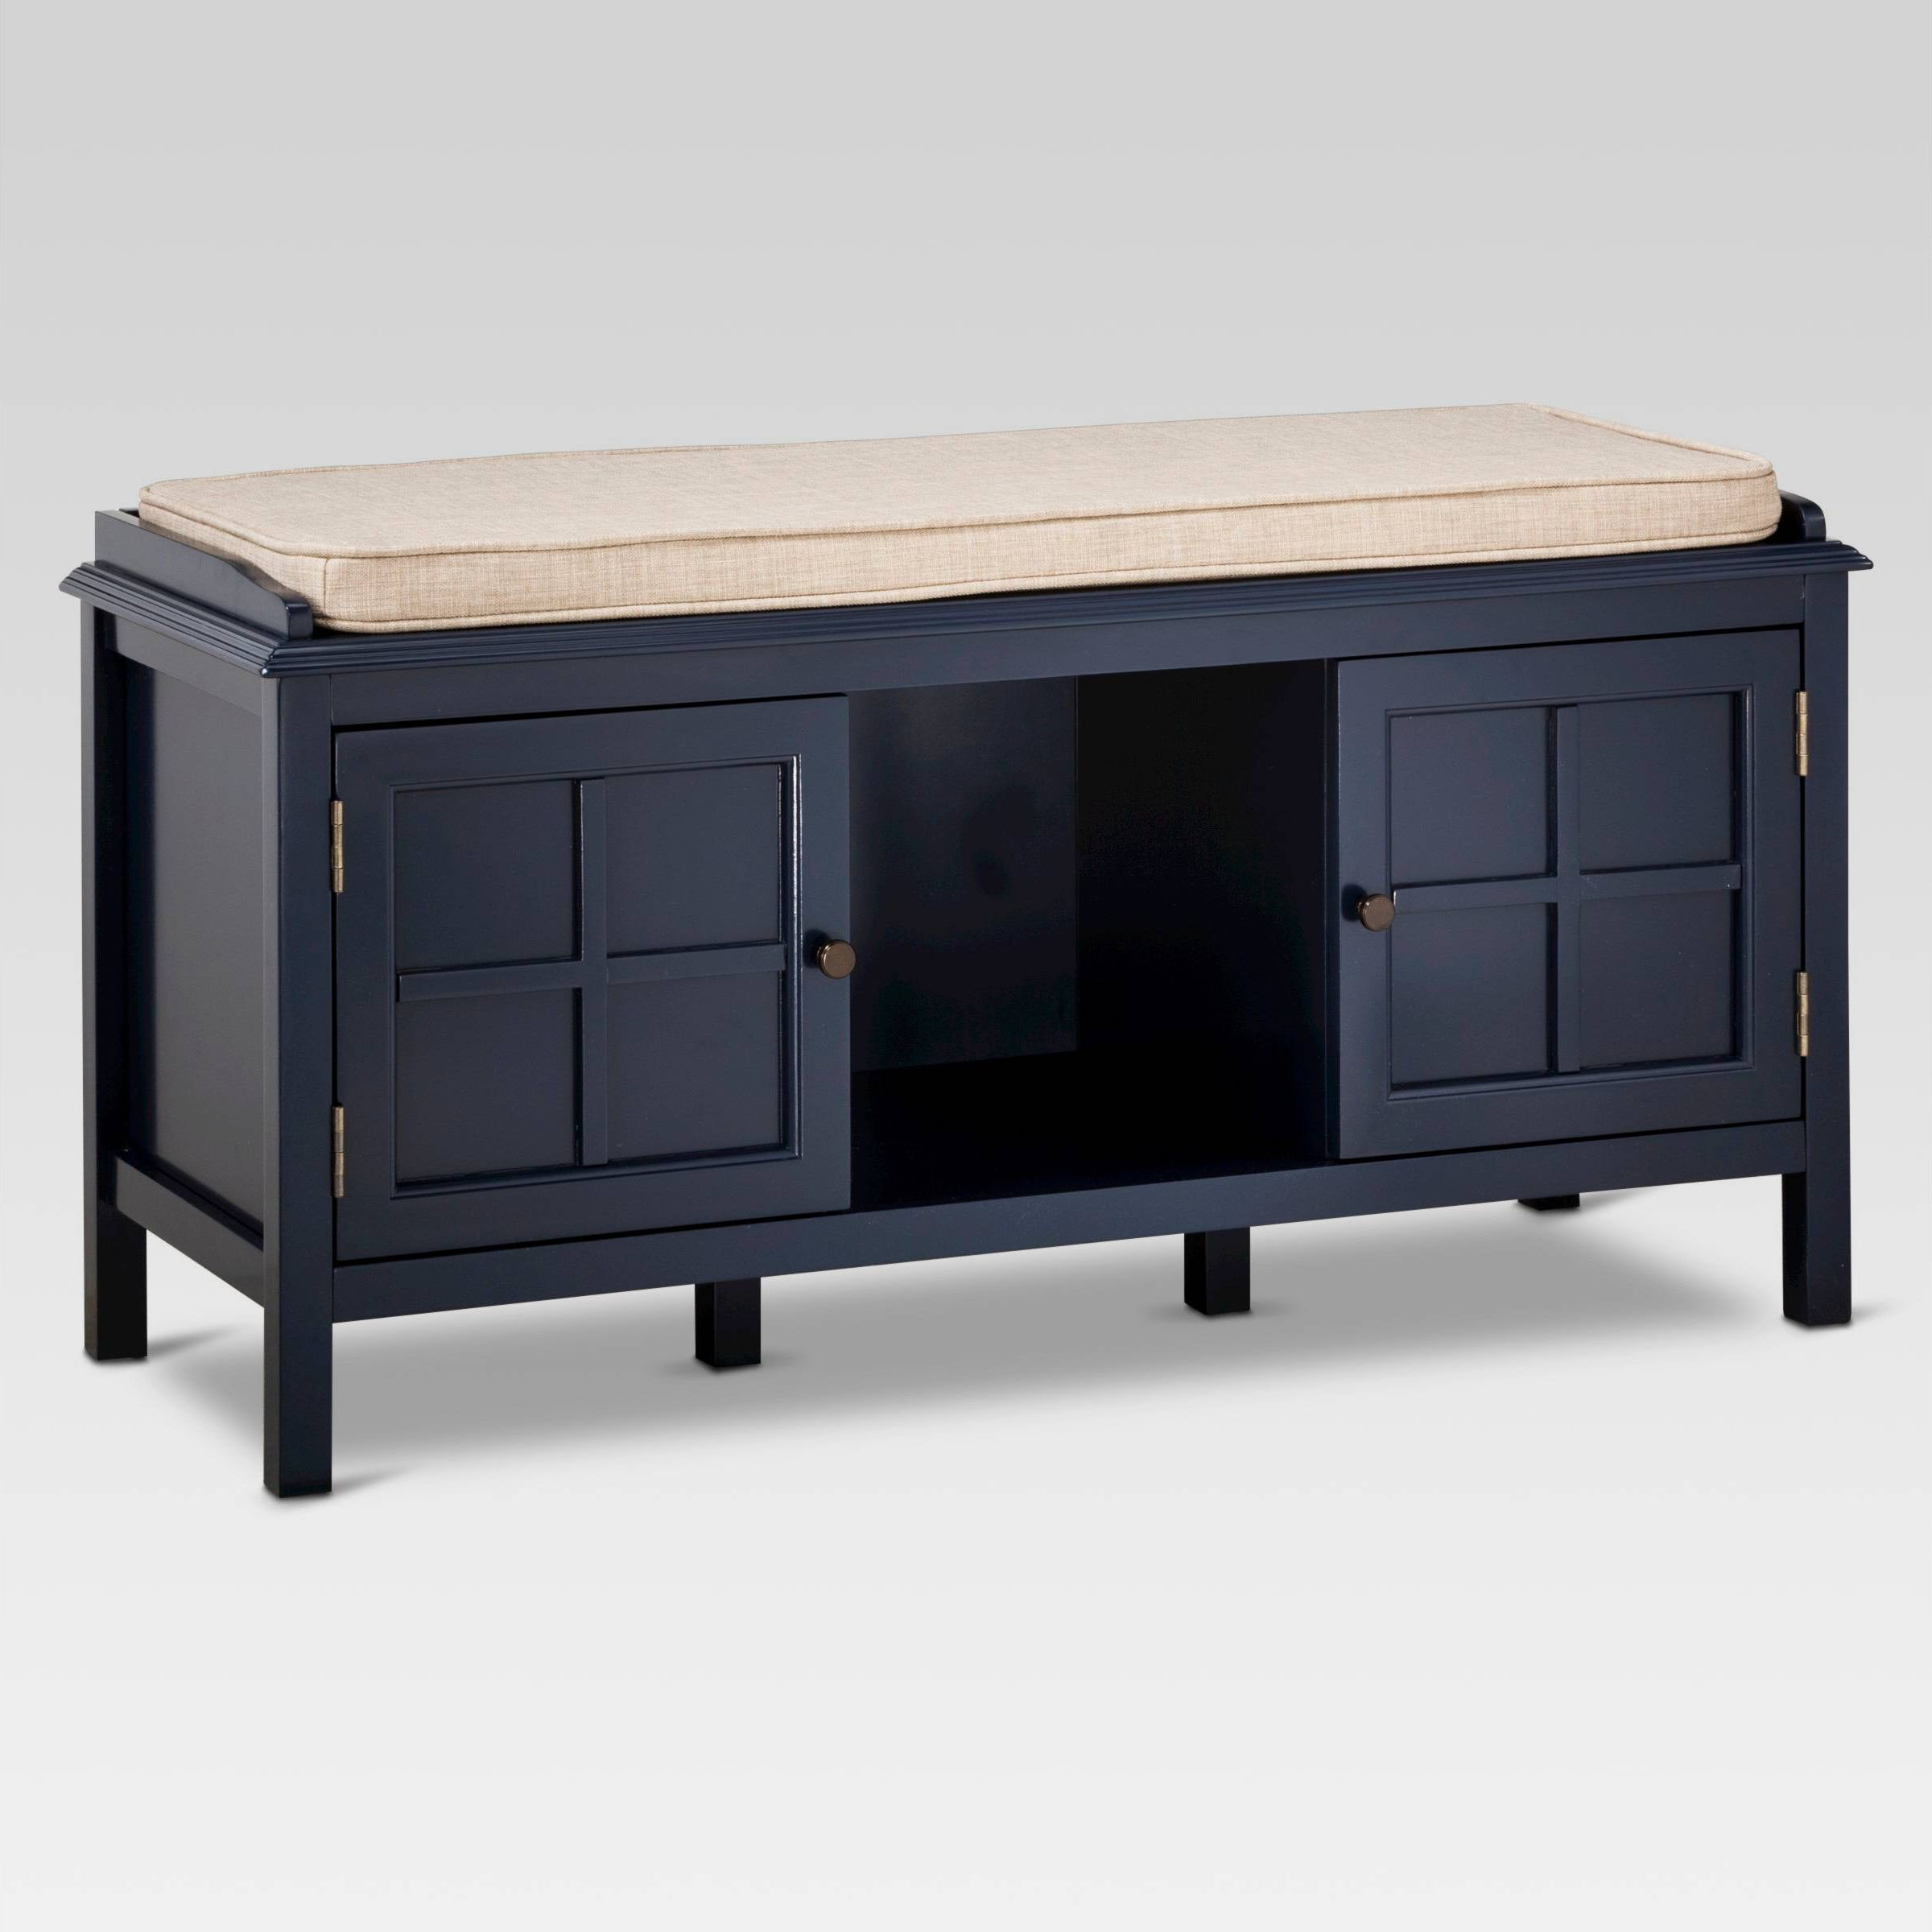 7 Best Storage Benches Of 2021